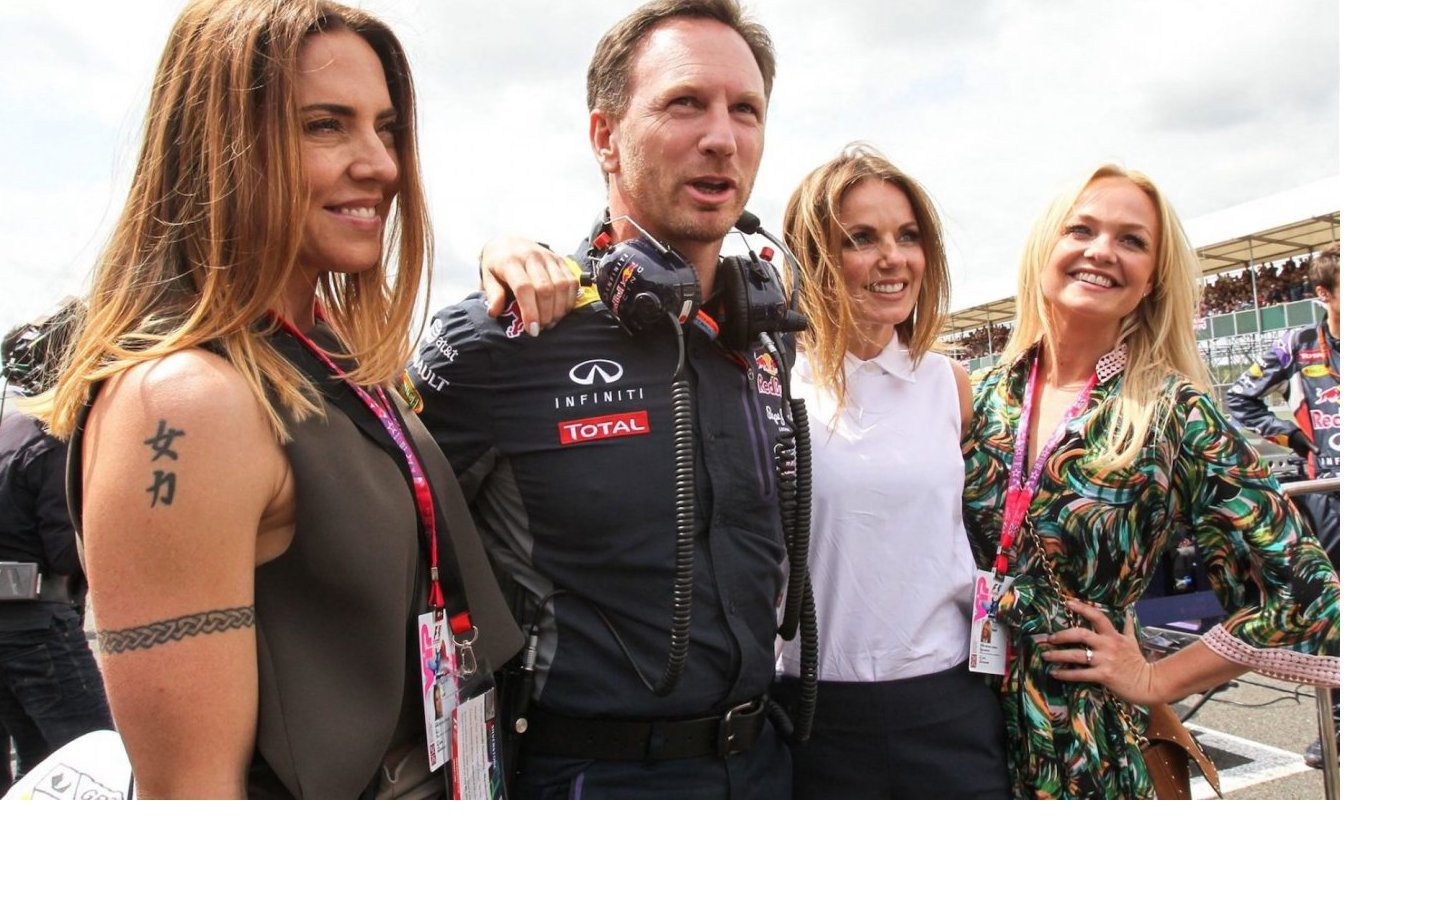 Spice Girls singer Mel C, Christian Horner of Red Bull Racing Team with wife Geri Halliwell and Emma Bunton on the grid at the British Grand Prix in Silverstone, England, July 2015